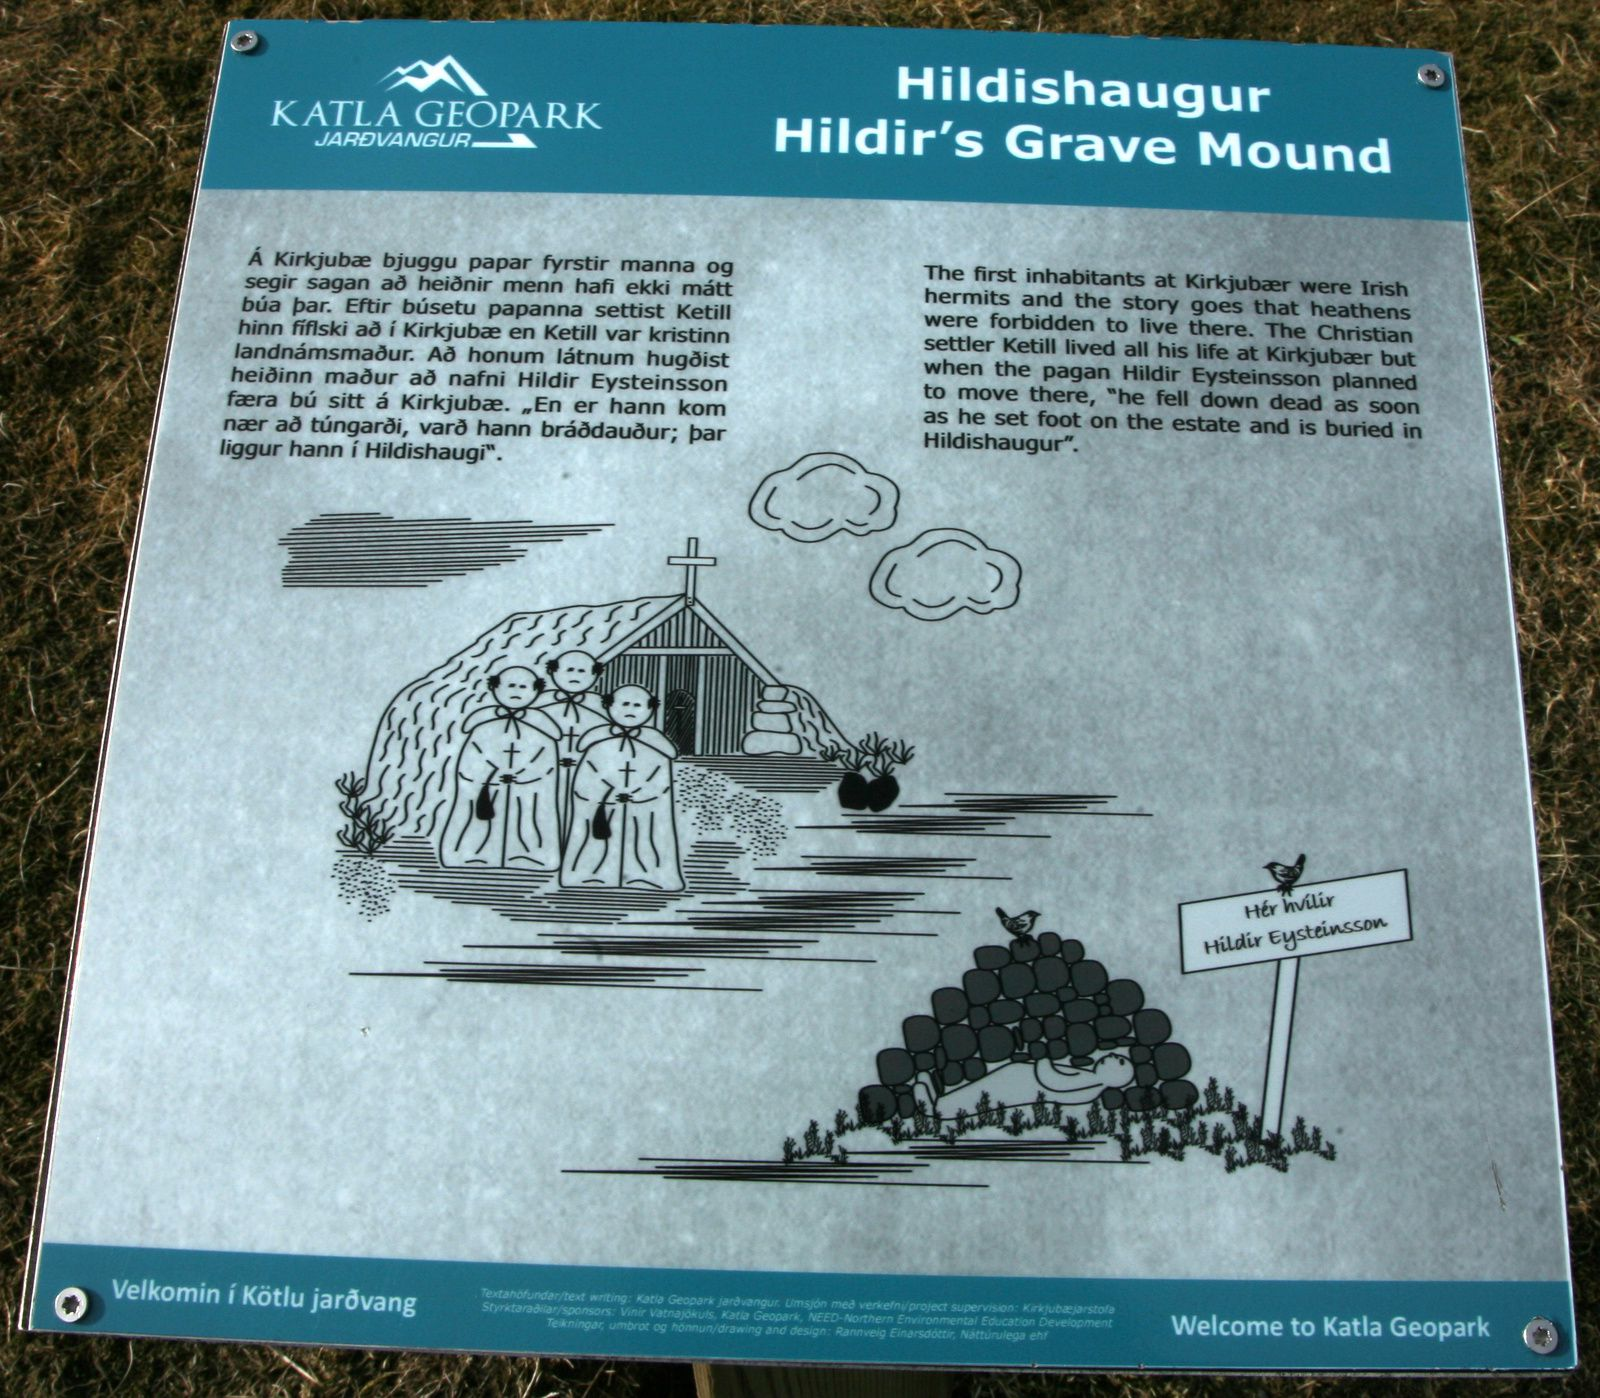 Hildishaugur and its explanatory panel - photo © 2015 Bernard Duyck